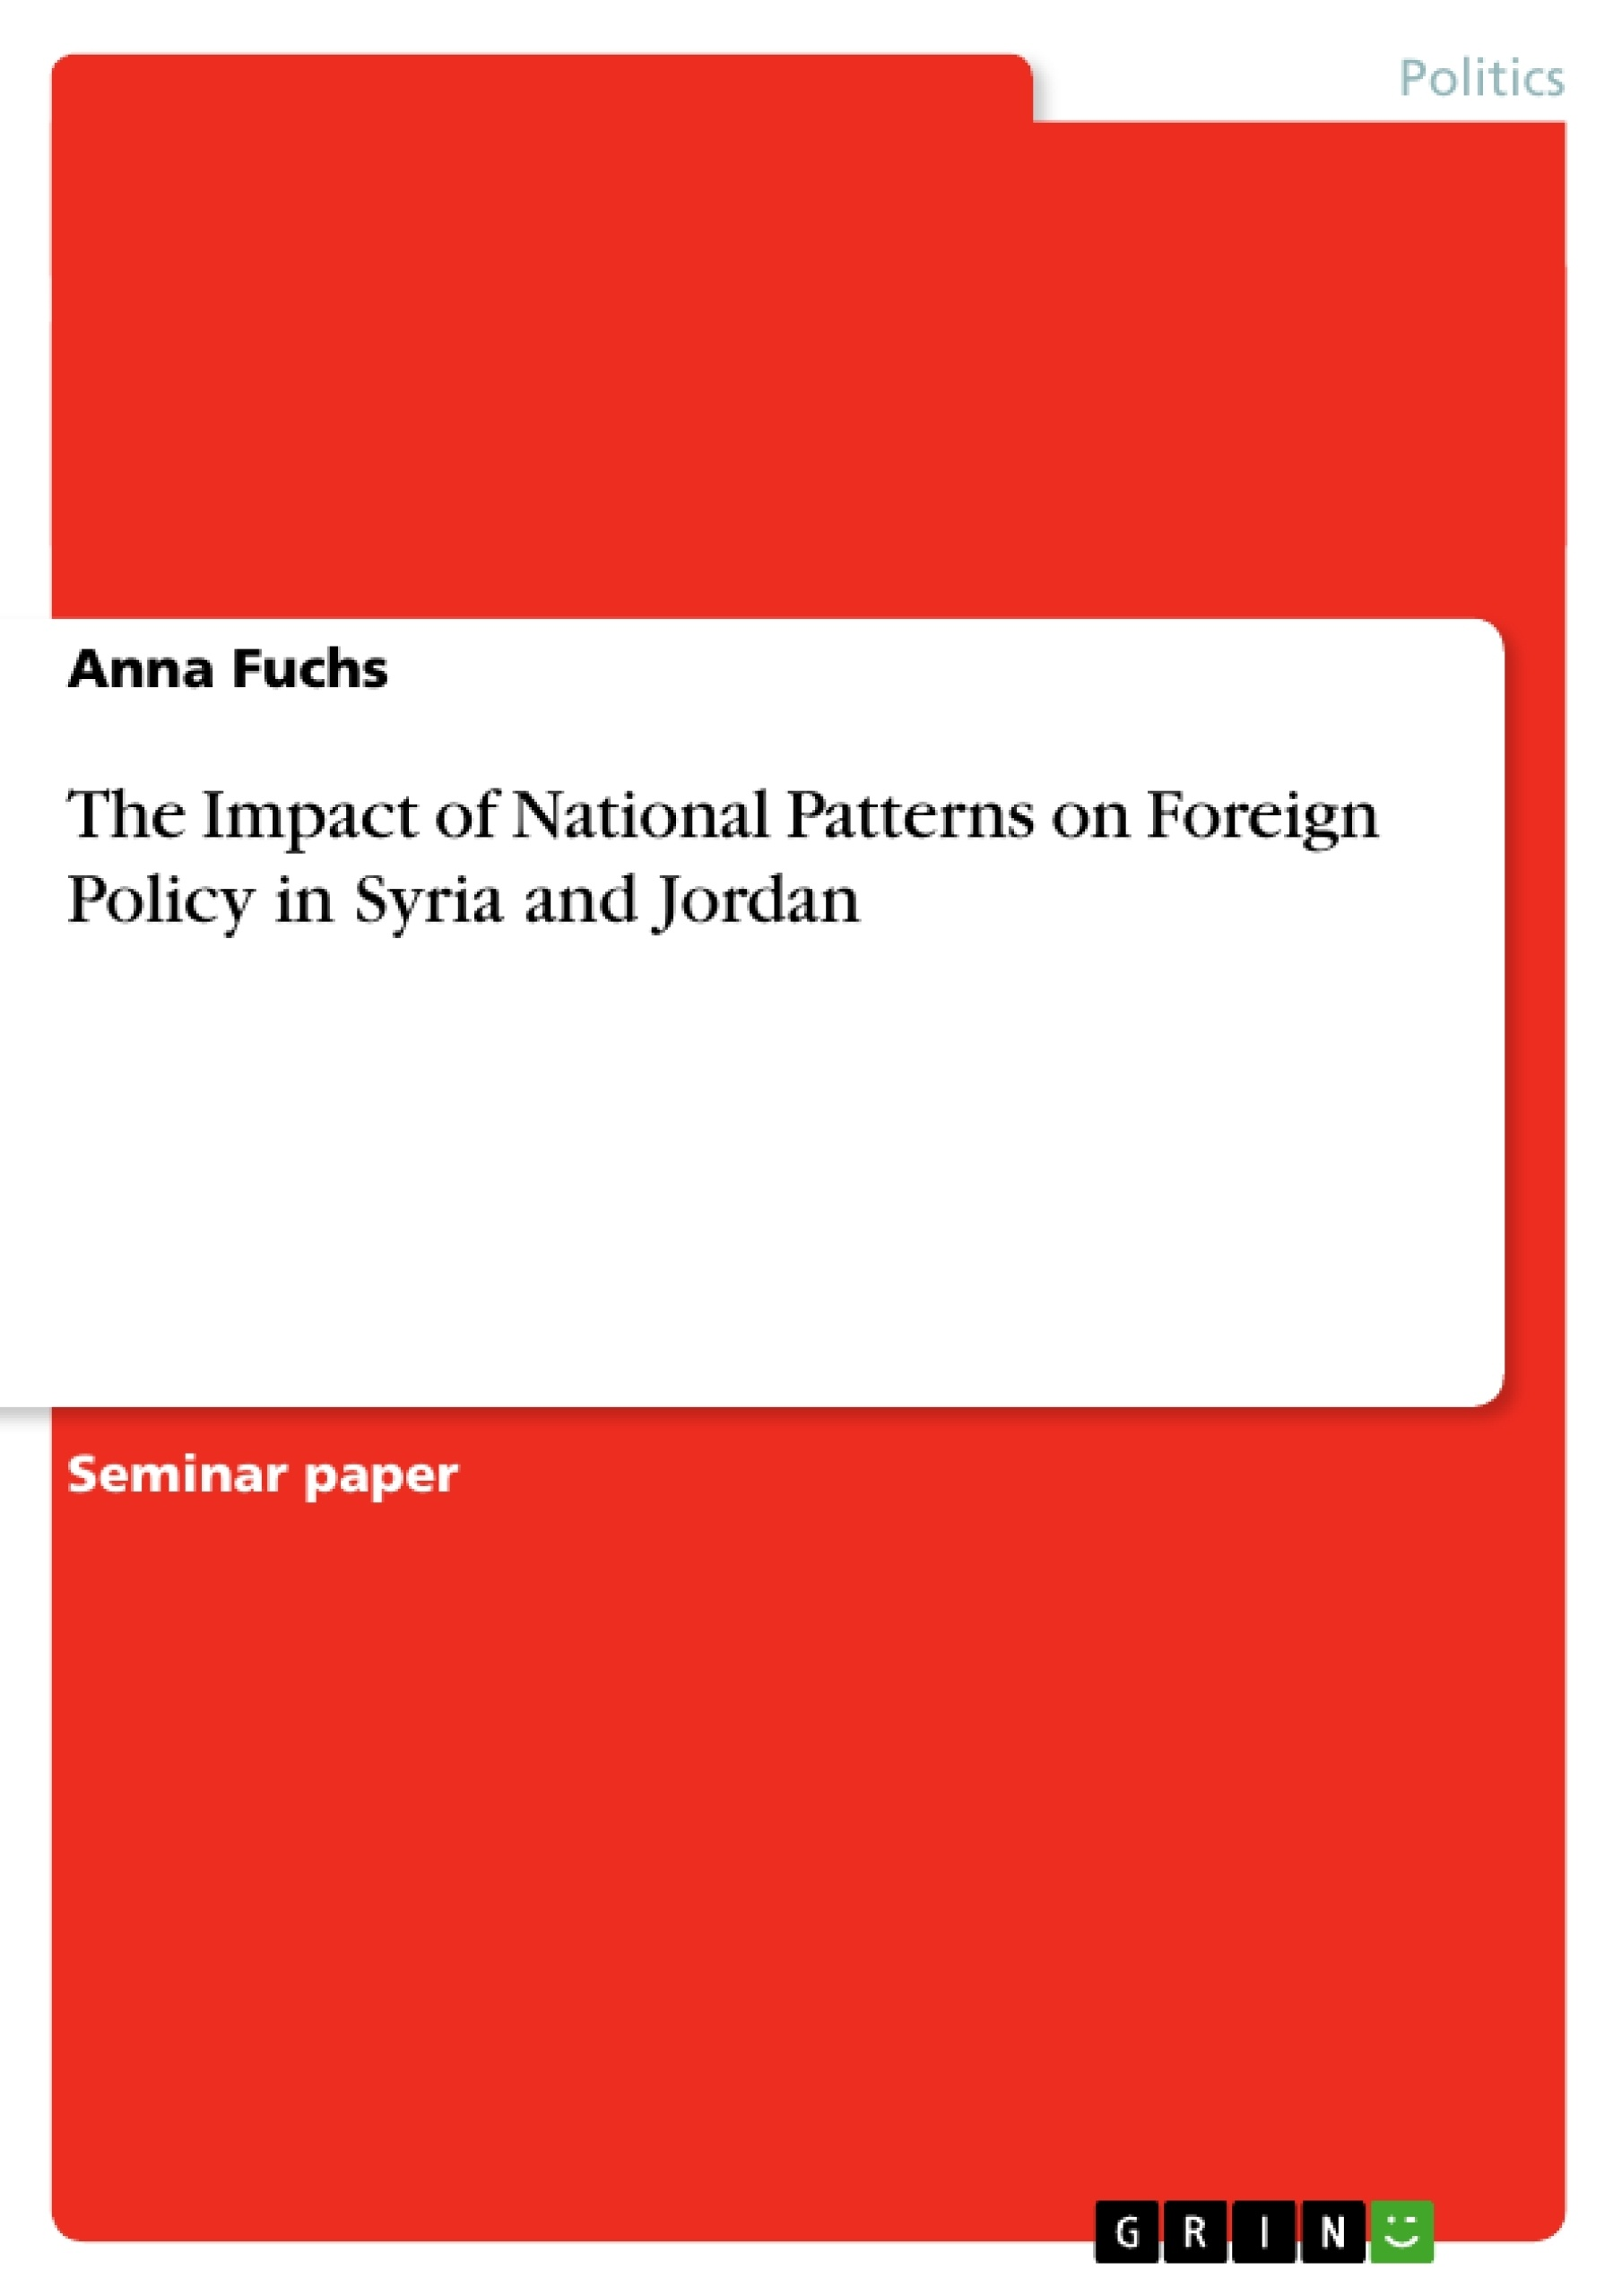 Title: The Impact of National Patterns on Foreign Policy in Syria and Jordan